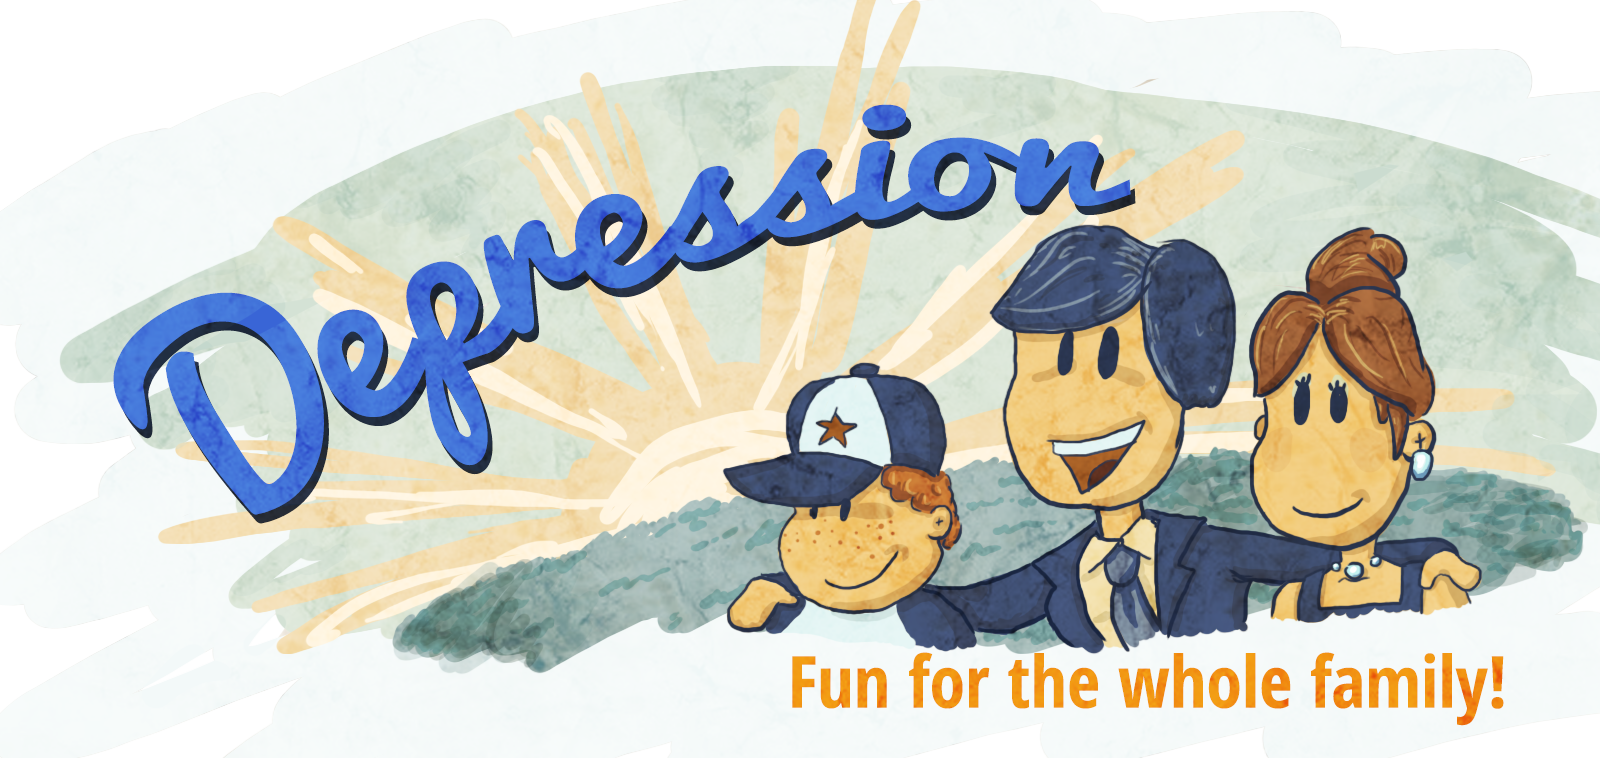 Depression: Fun for the whole family!